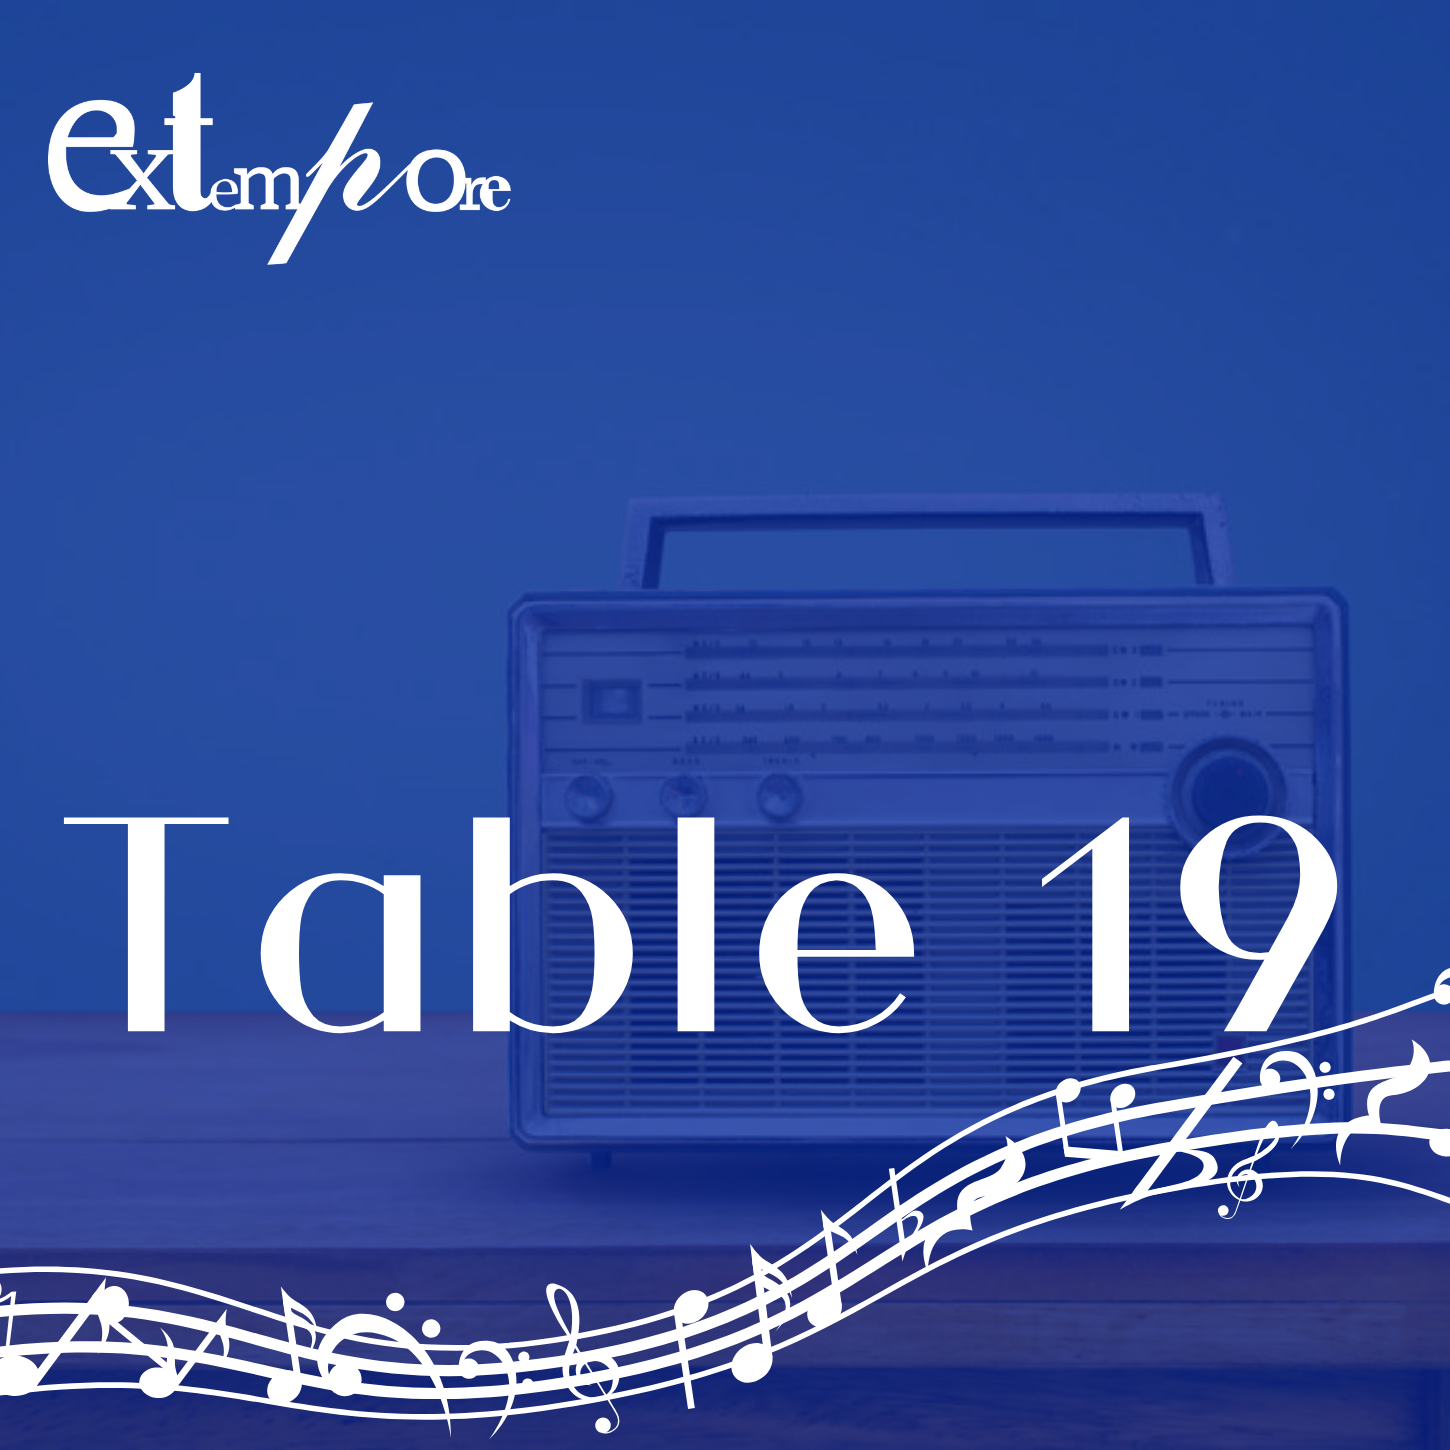 Welcome to Table 19, the best table in the house